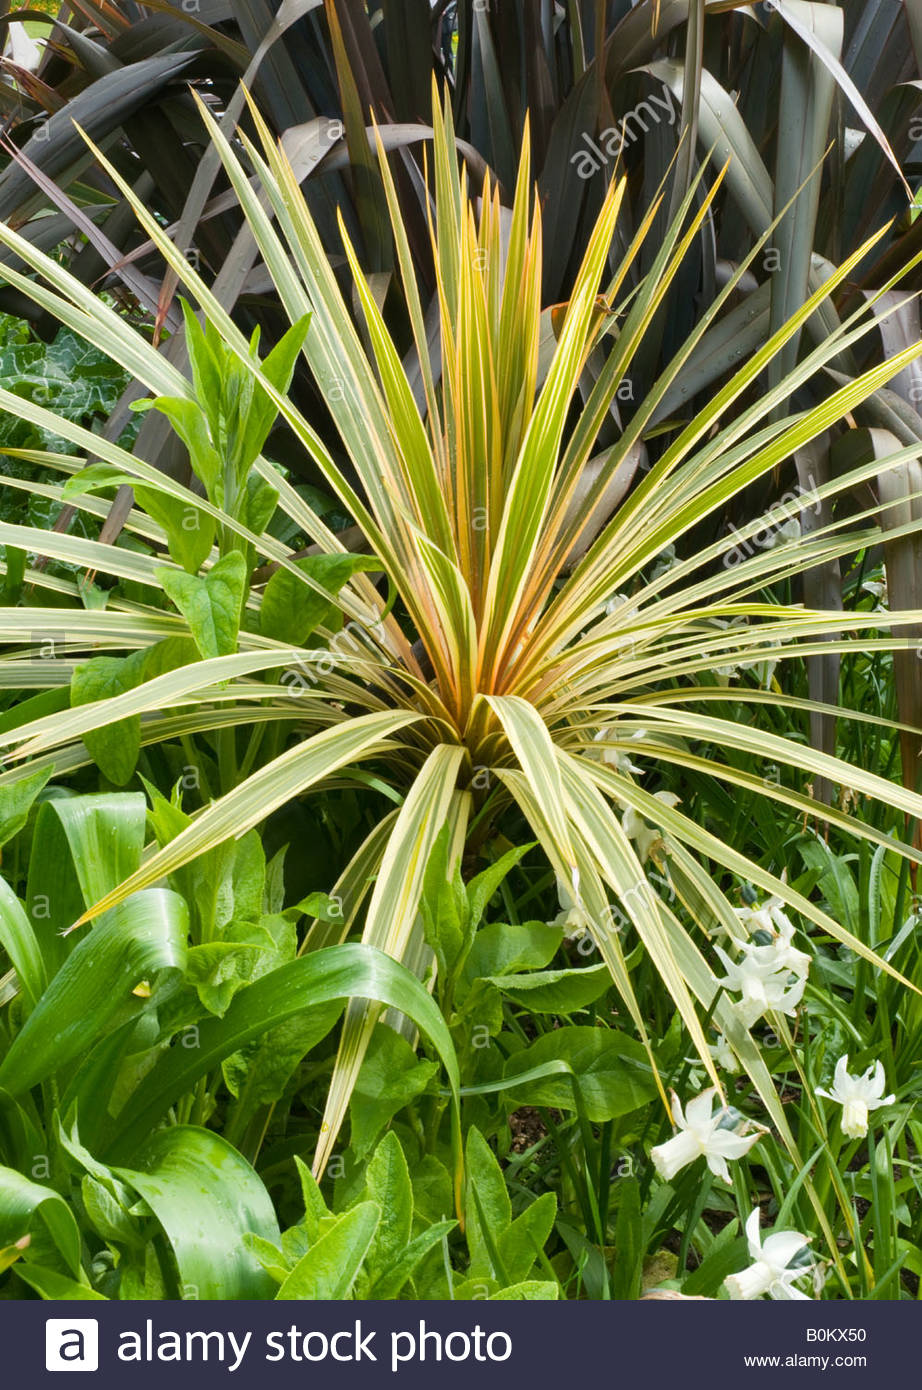 Charming Uk Tropical Plants Part - 2: Stock Photo - Tropical Plants Growing In Gardens Near Bournemouth Beach  Dorset UK